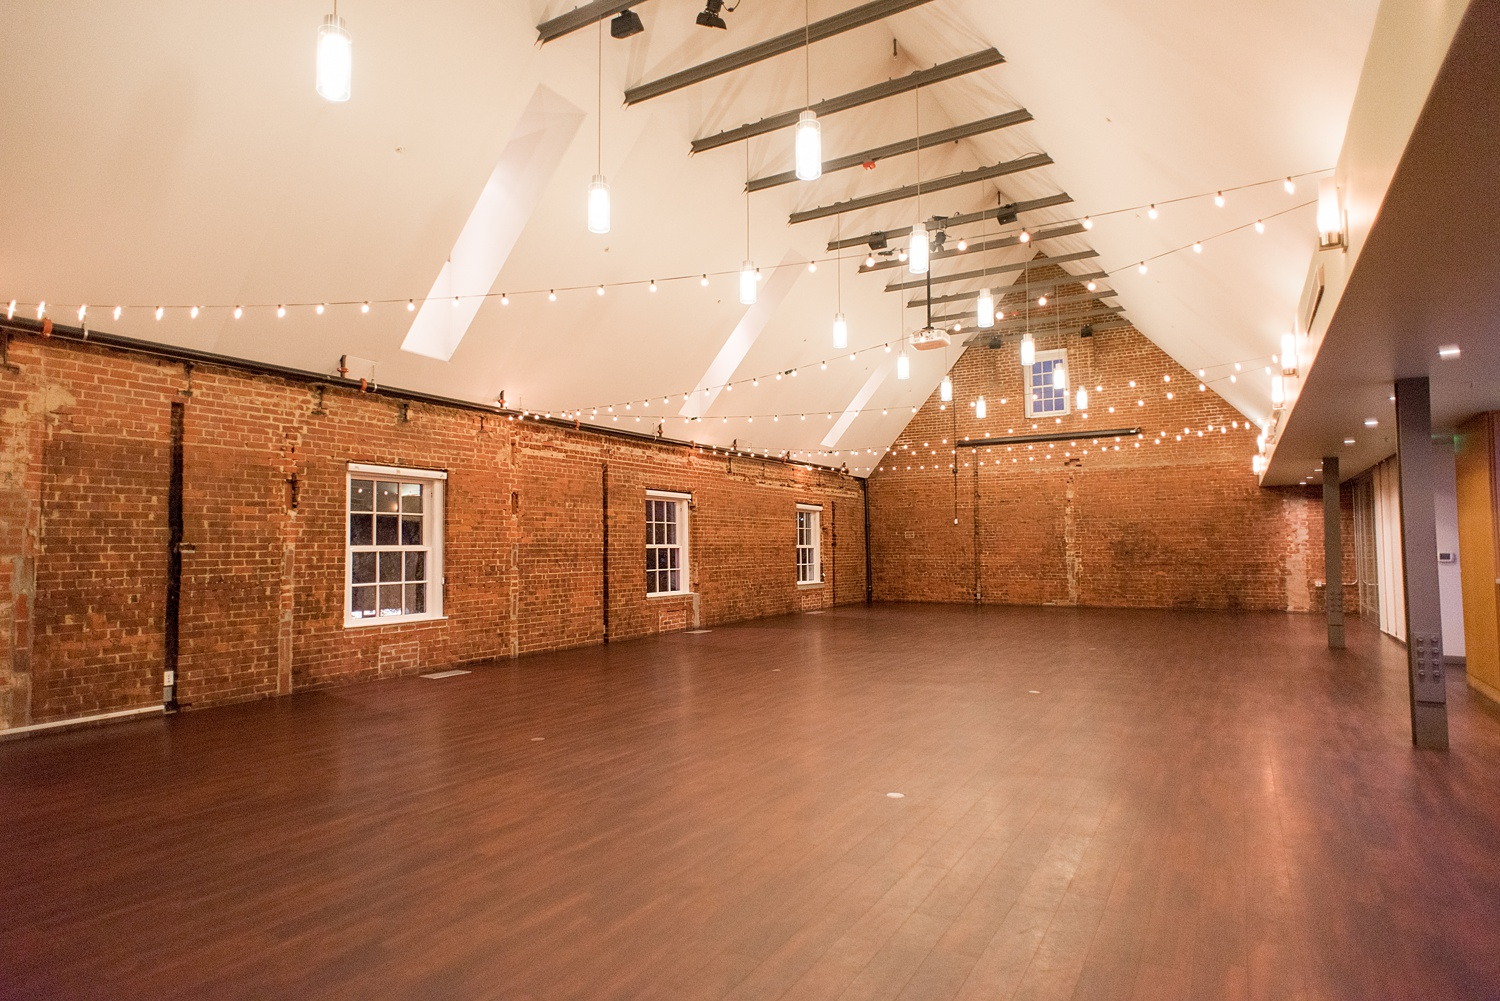 the great room - Have your own private Franklin Street celebration in the Great Room event space. We are excited to host wedding ceremonies & receptions, private dining, large parties, conferences & fundraisers, and much more!